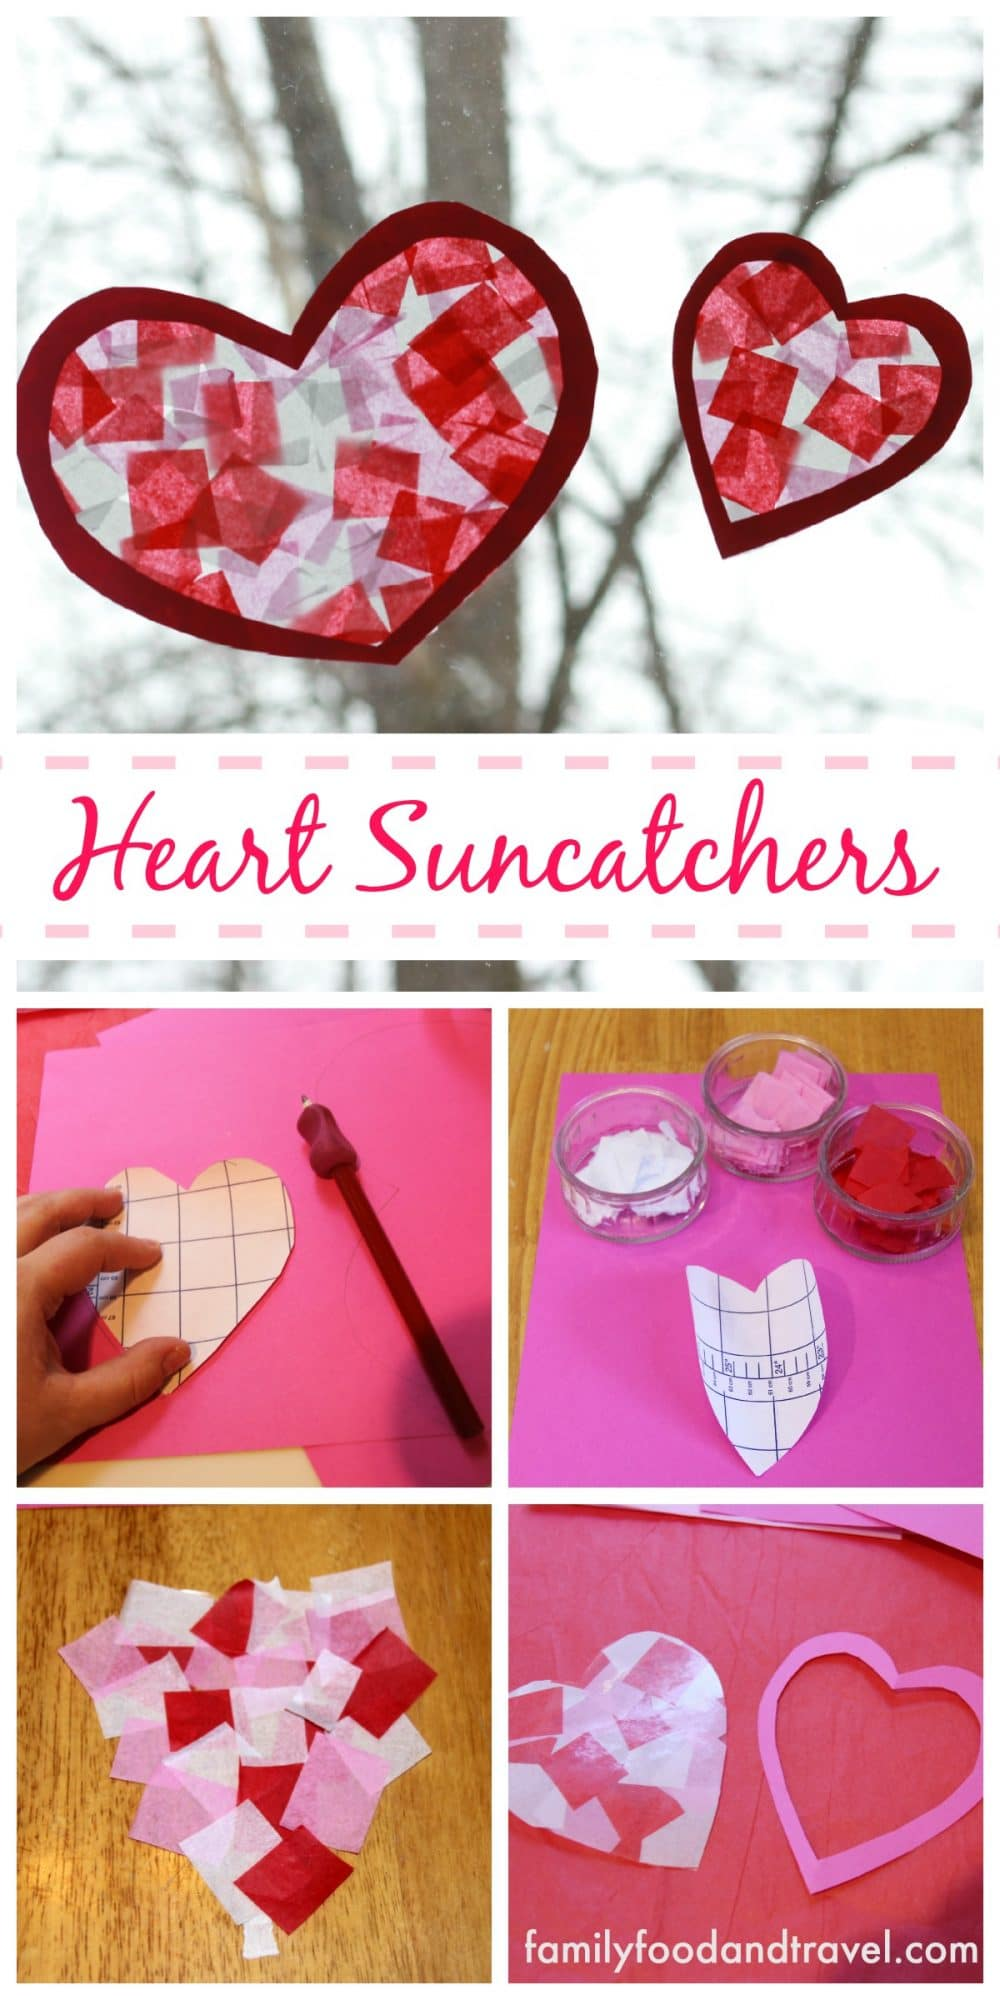 heart suncatchers craft